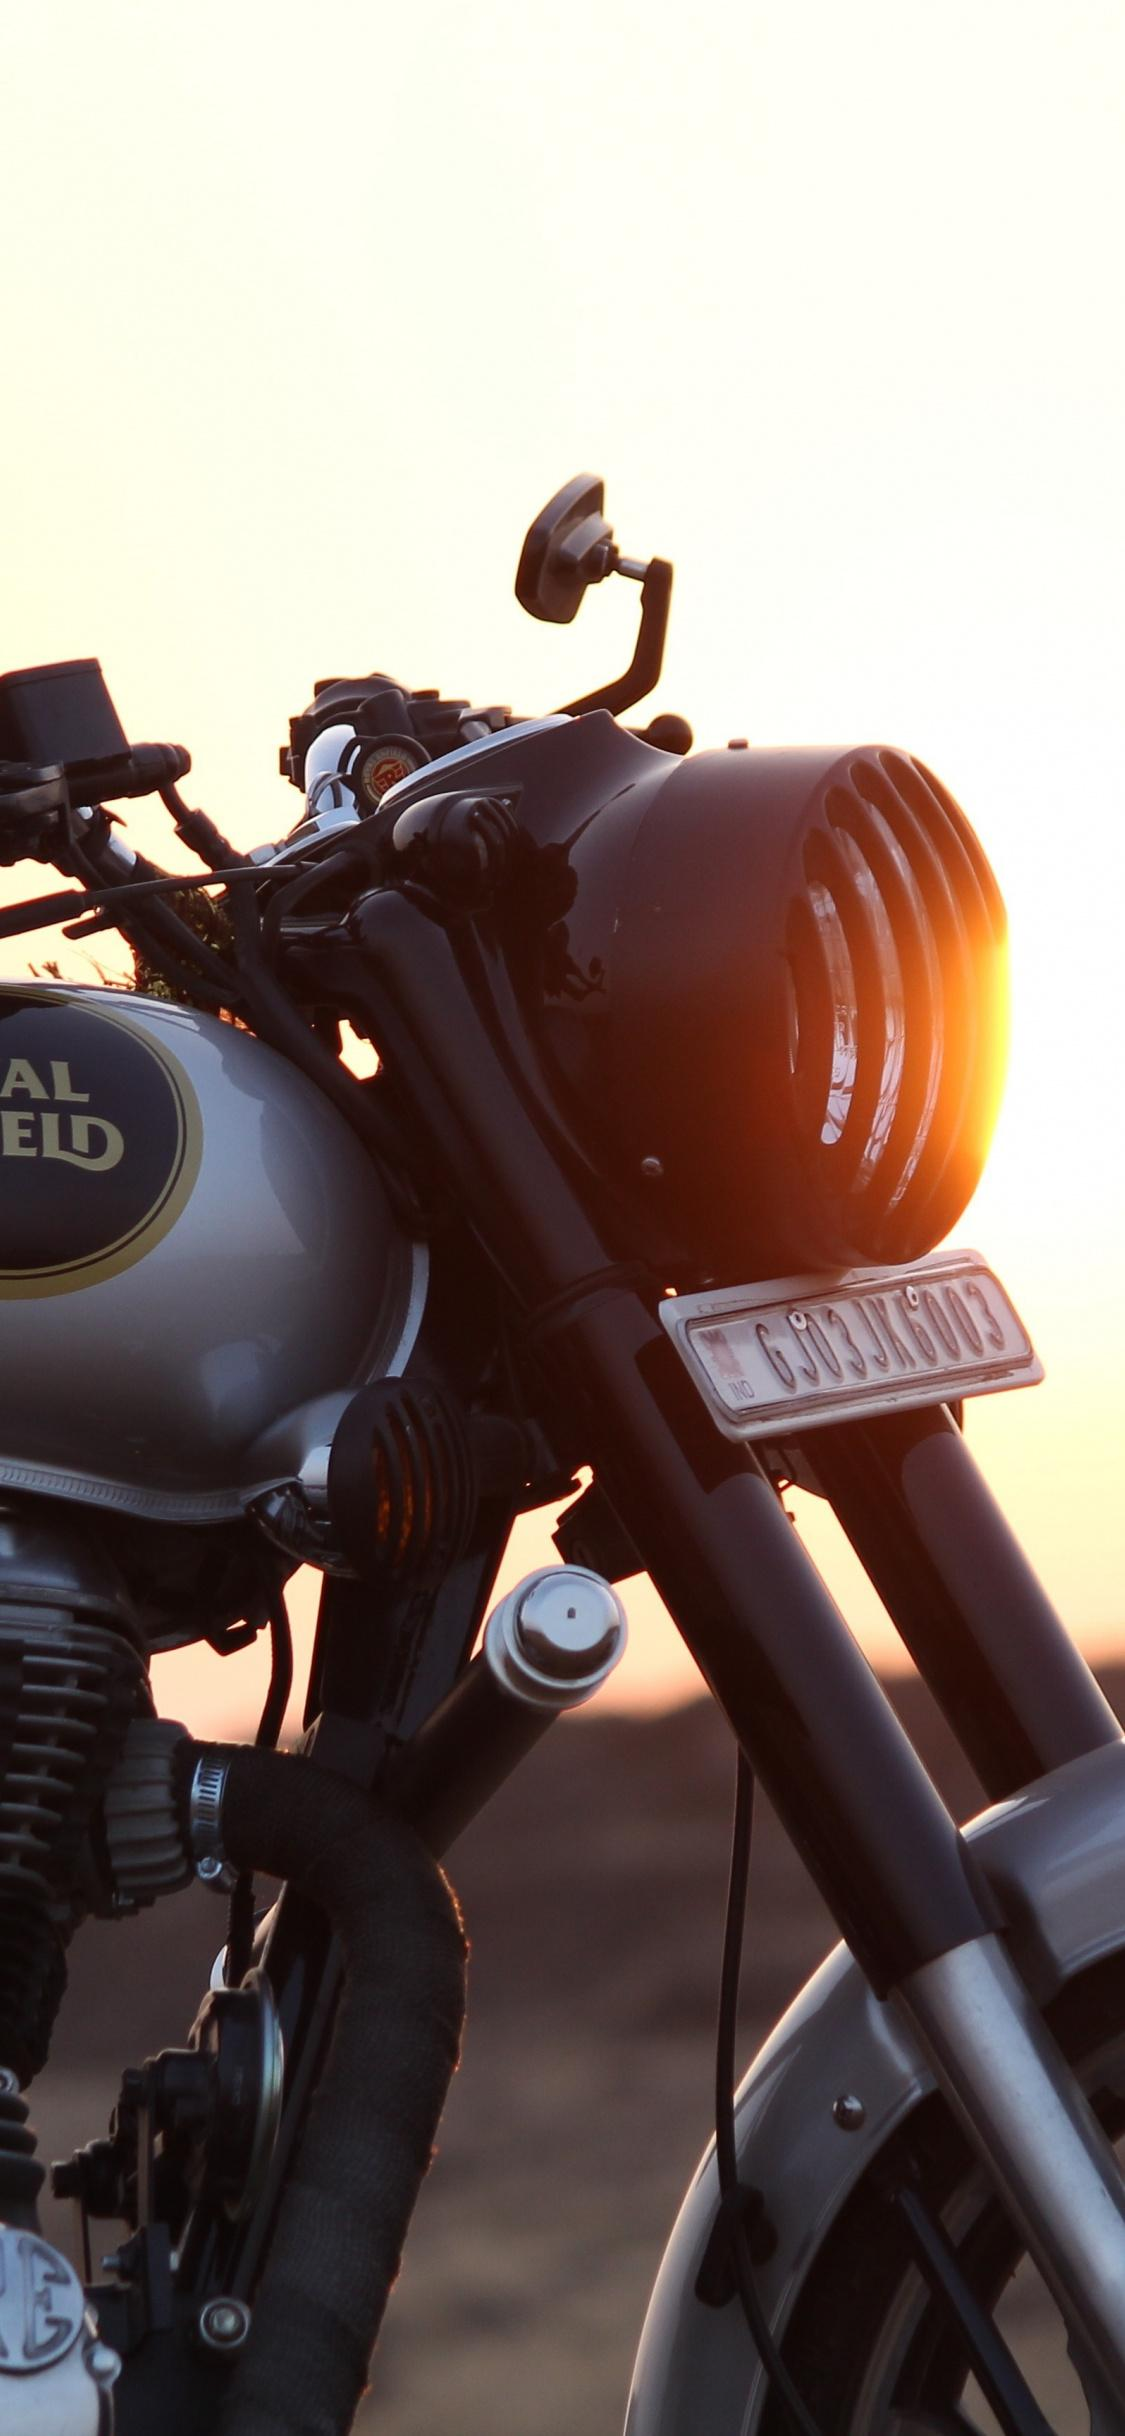 Royal Enfield 500 Stealth Black Wallpapers Wallpaper Cave